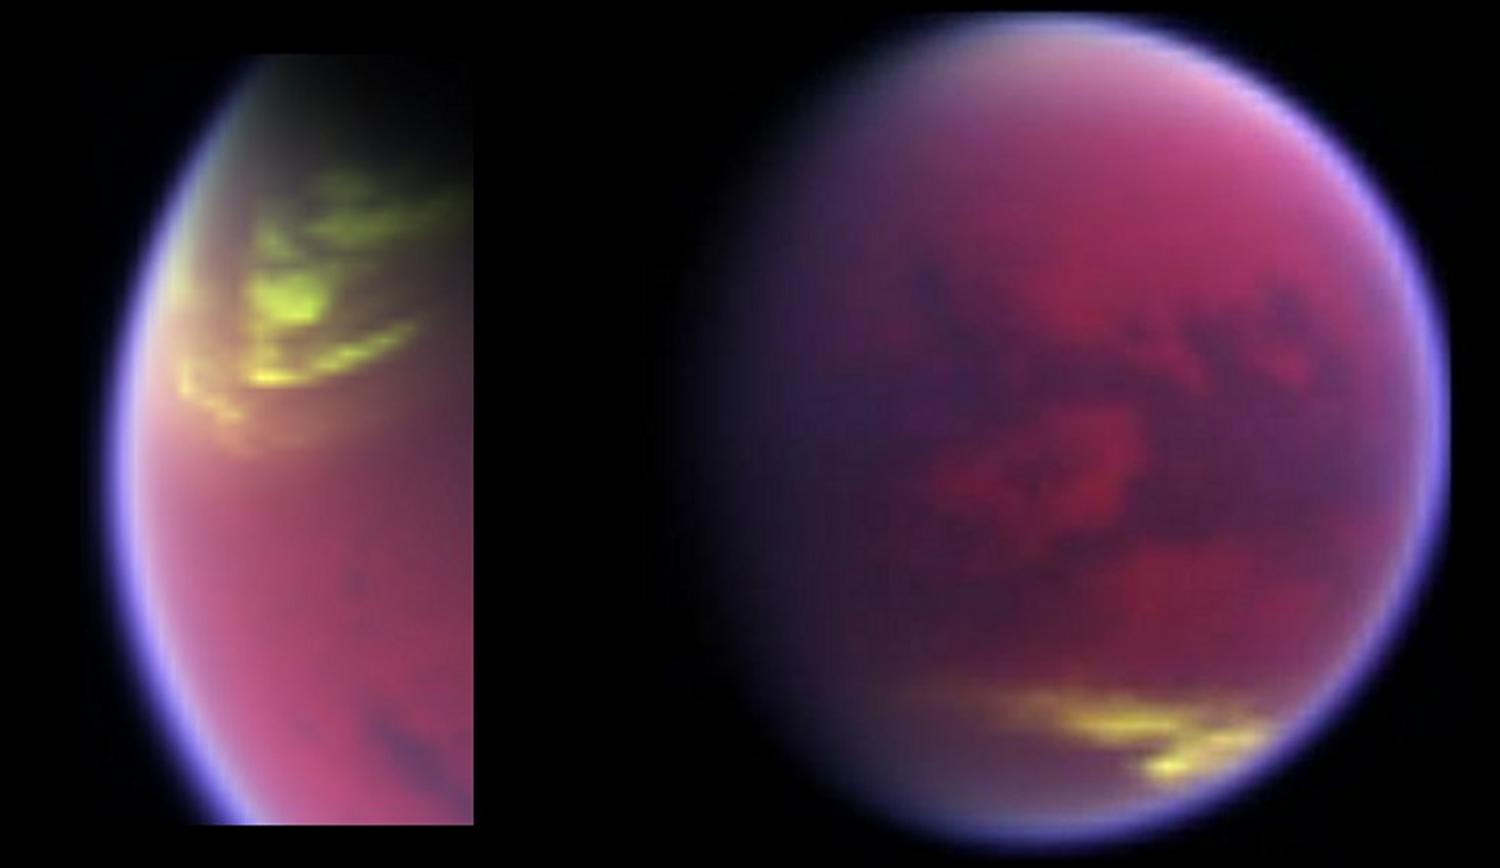 These two false-color images show clouds covering parts of Titan in yellow